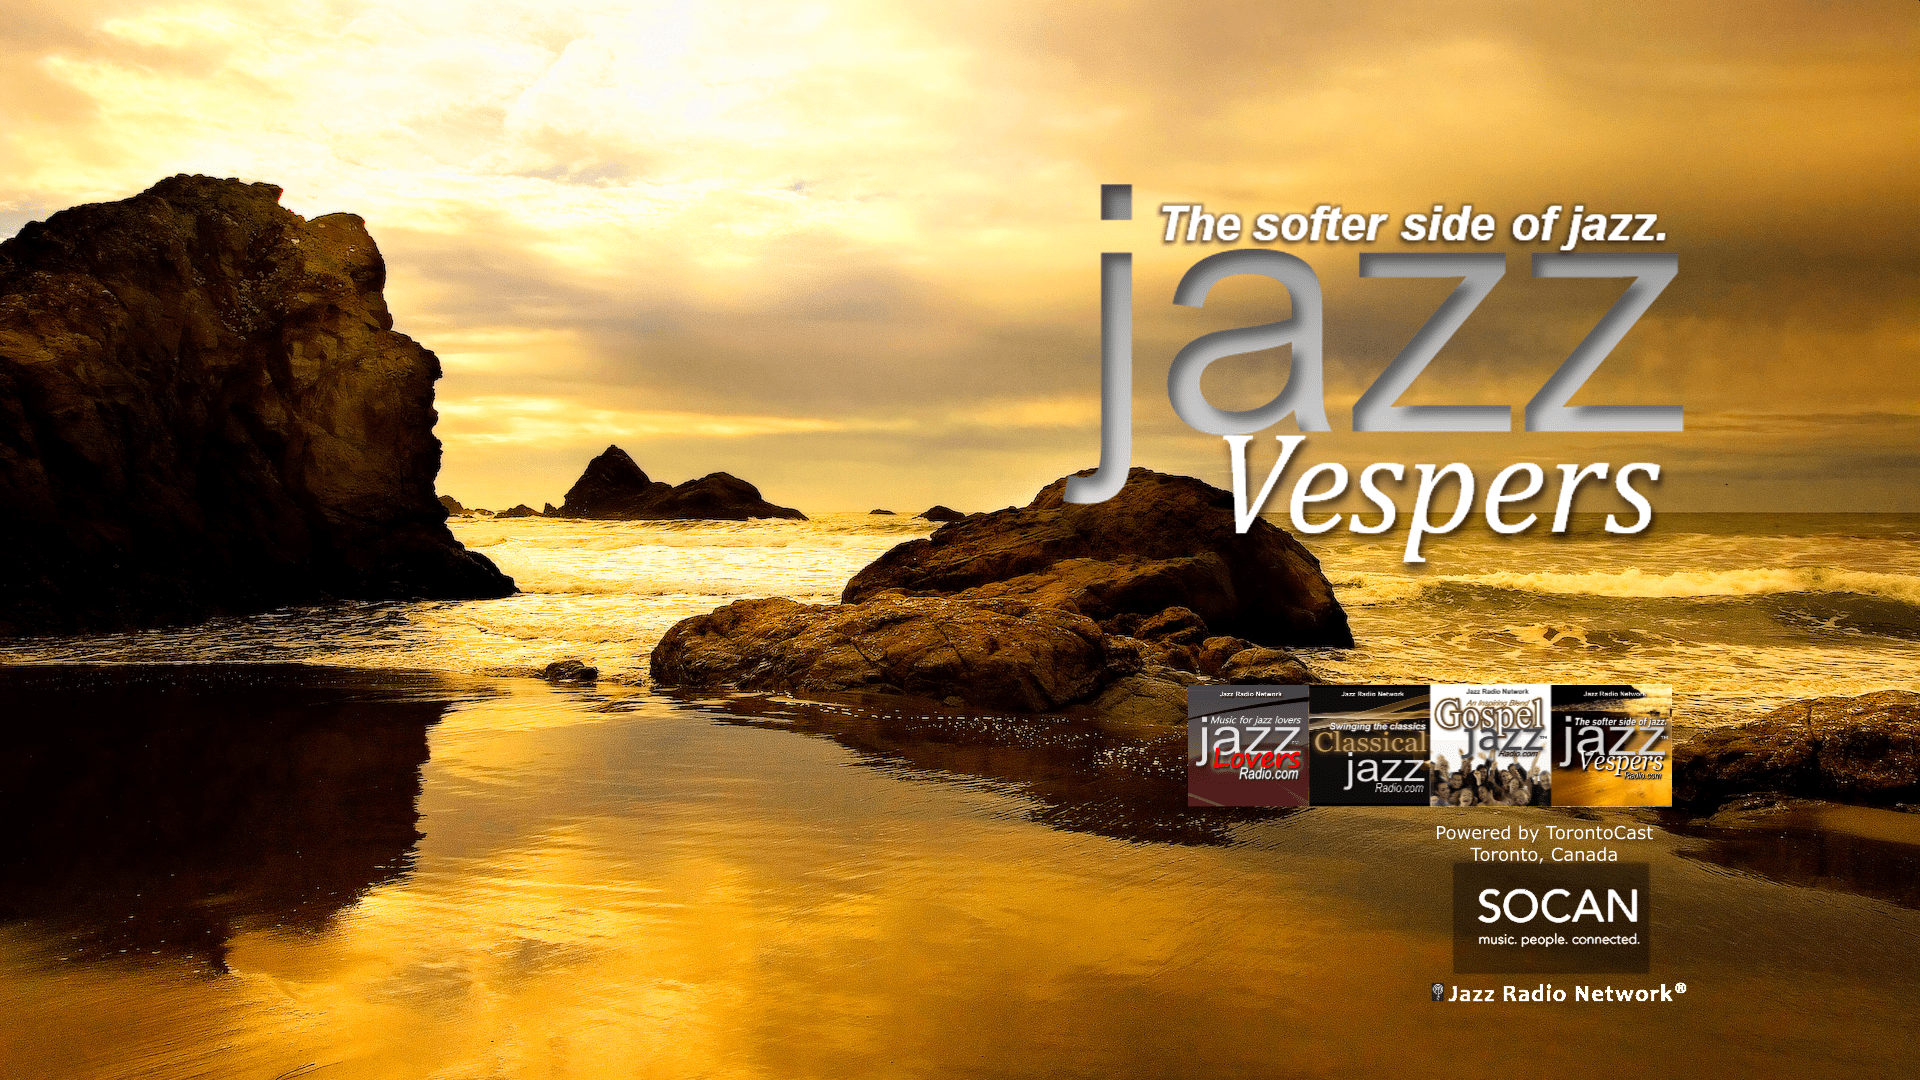 A service of Jazz Radio Network